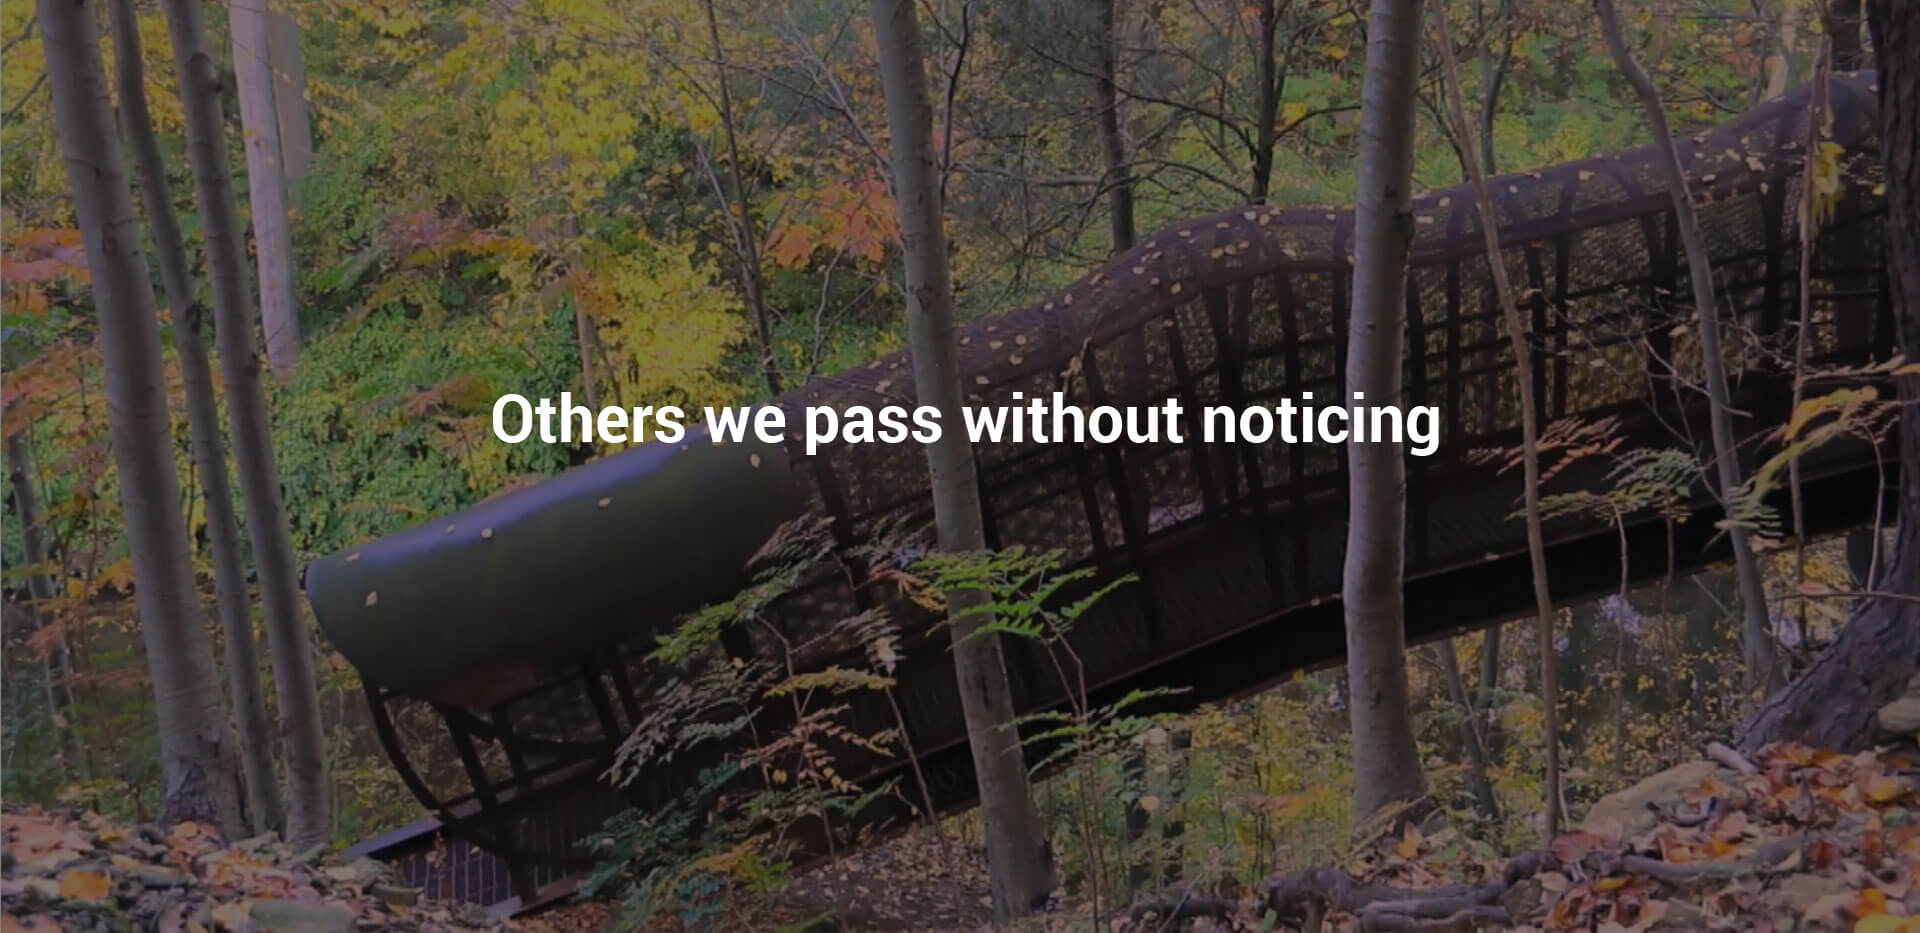 Others we pass without noticing